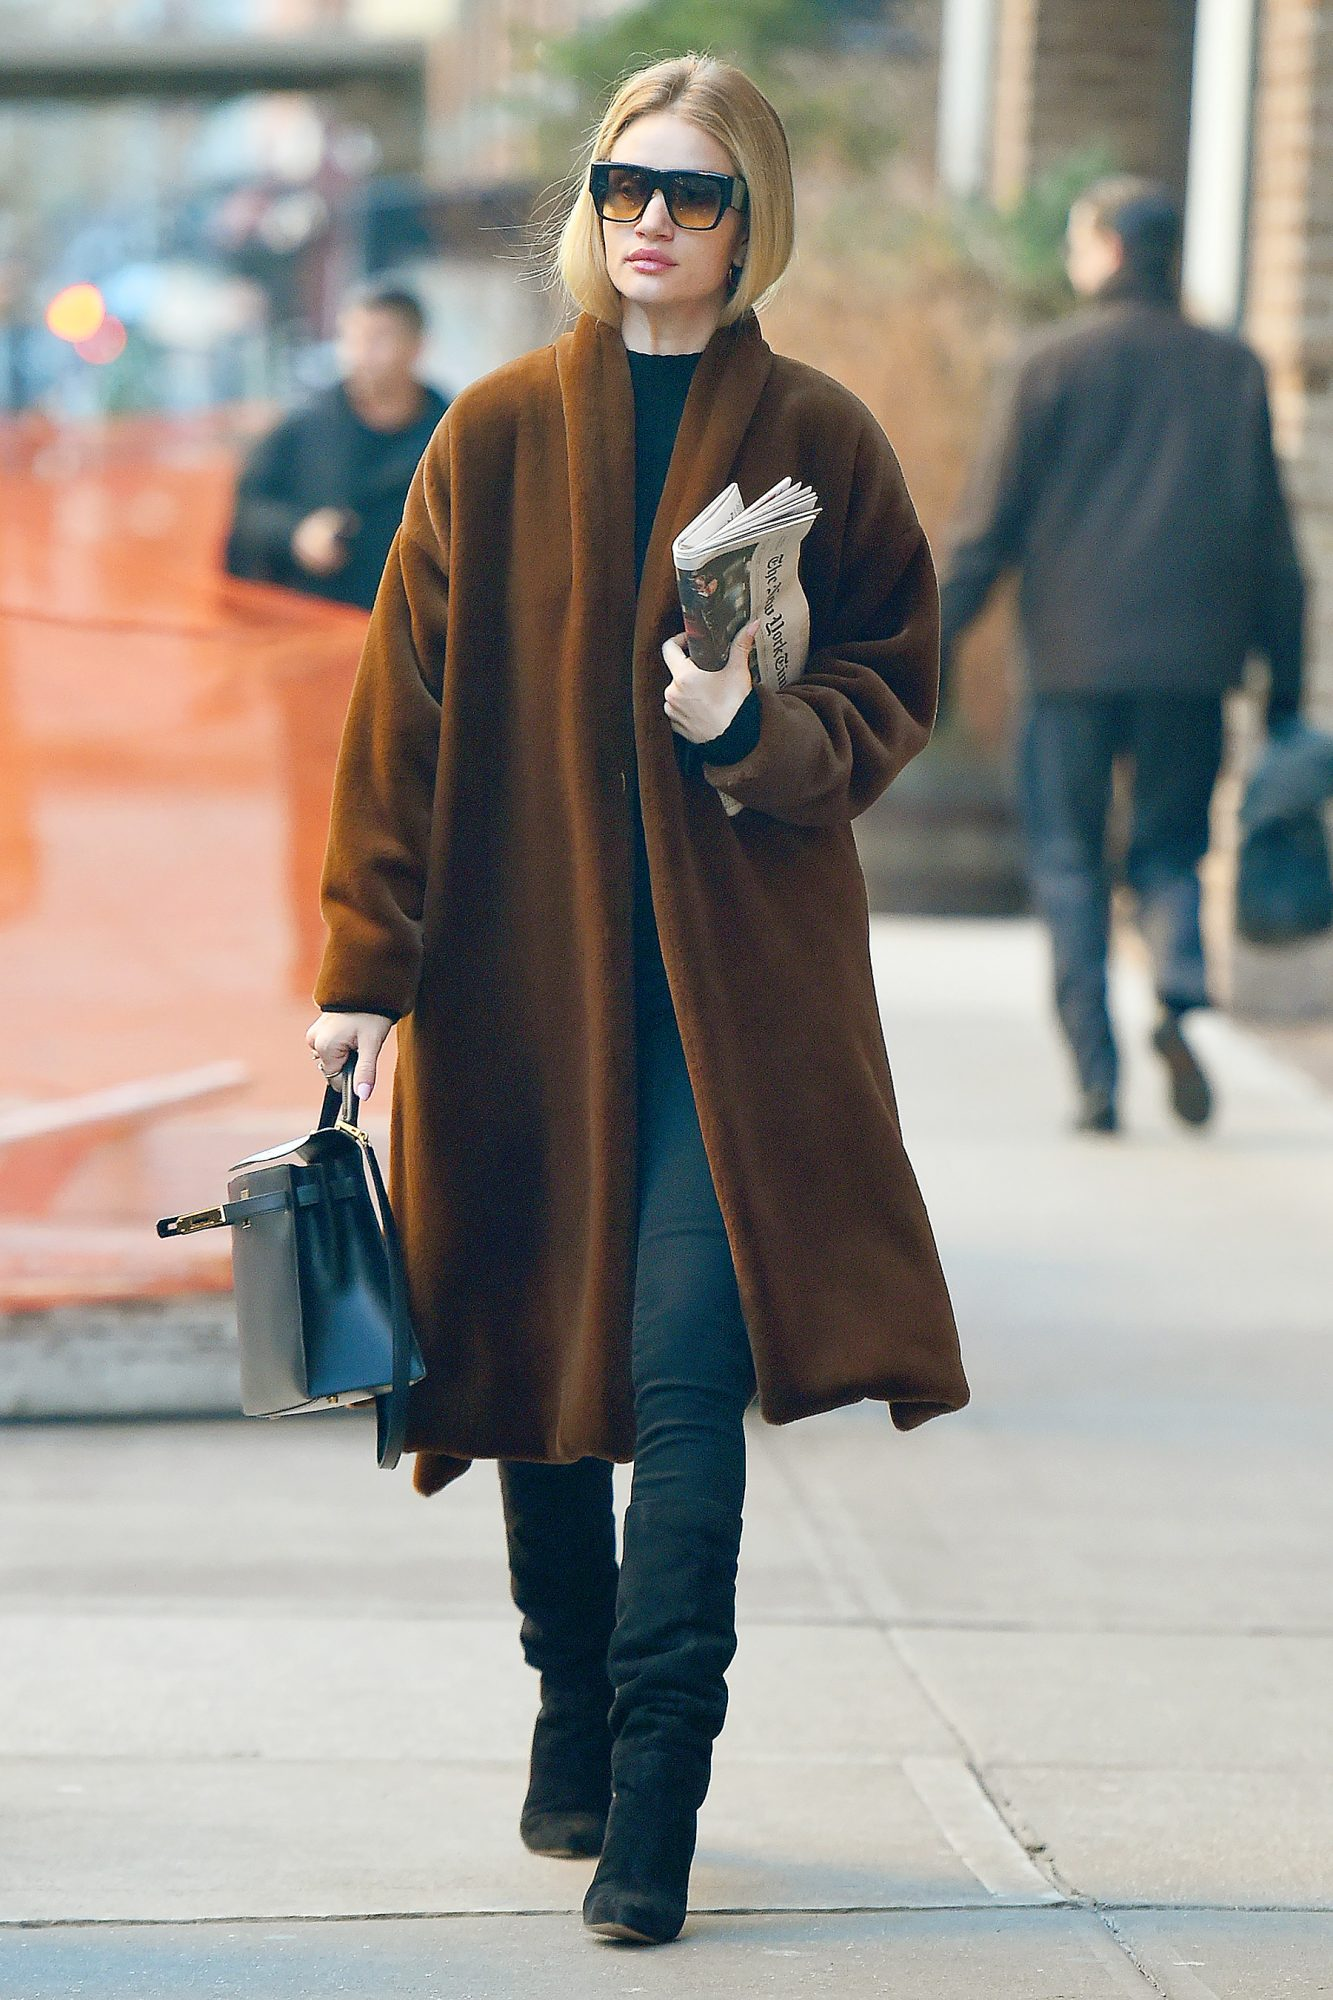 Rosie Huntington-Whiteley Carries The New York Times Newspaper In New York City